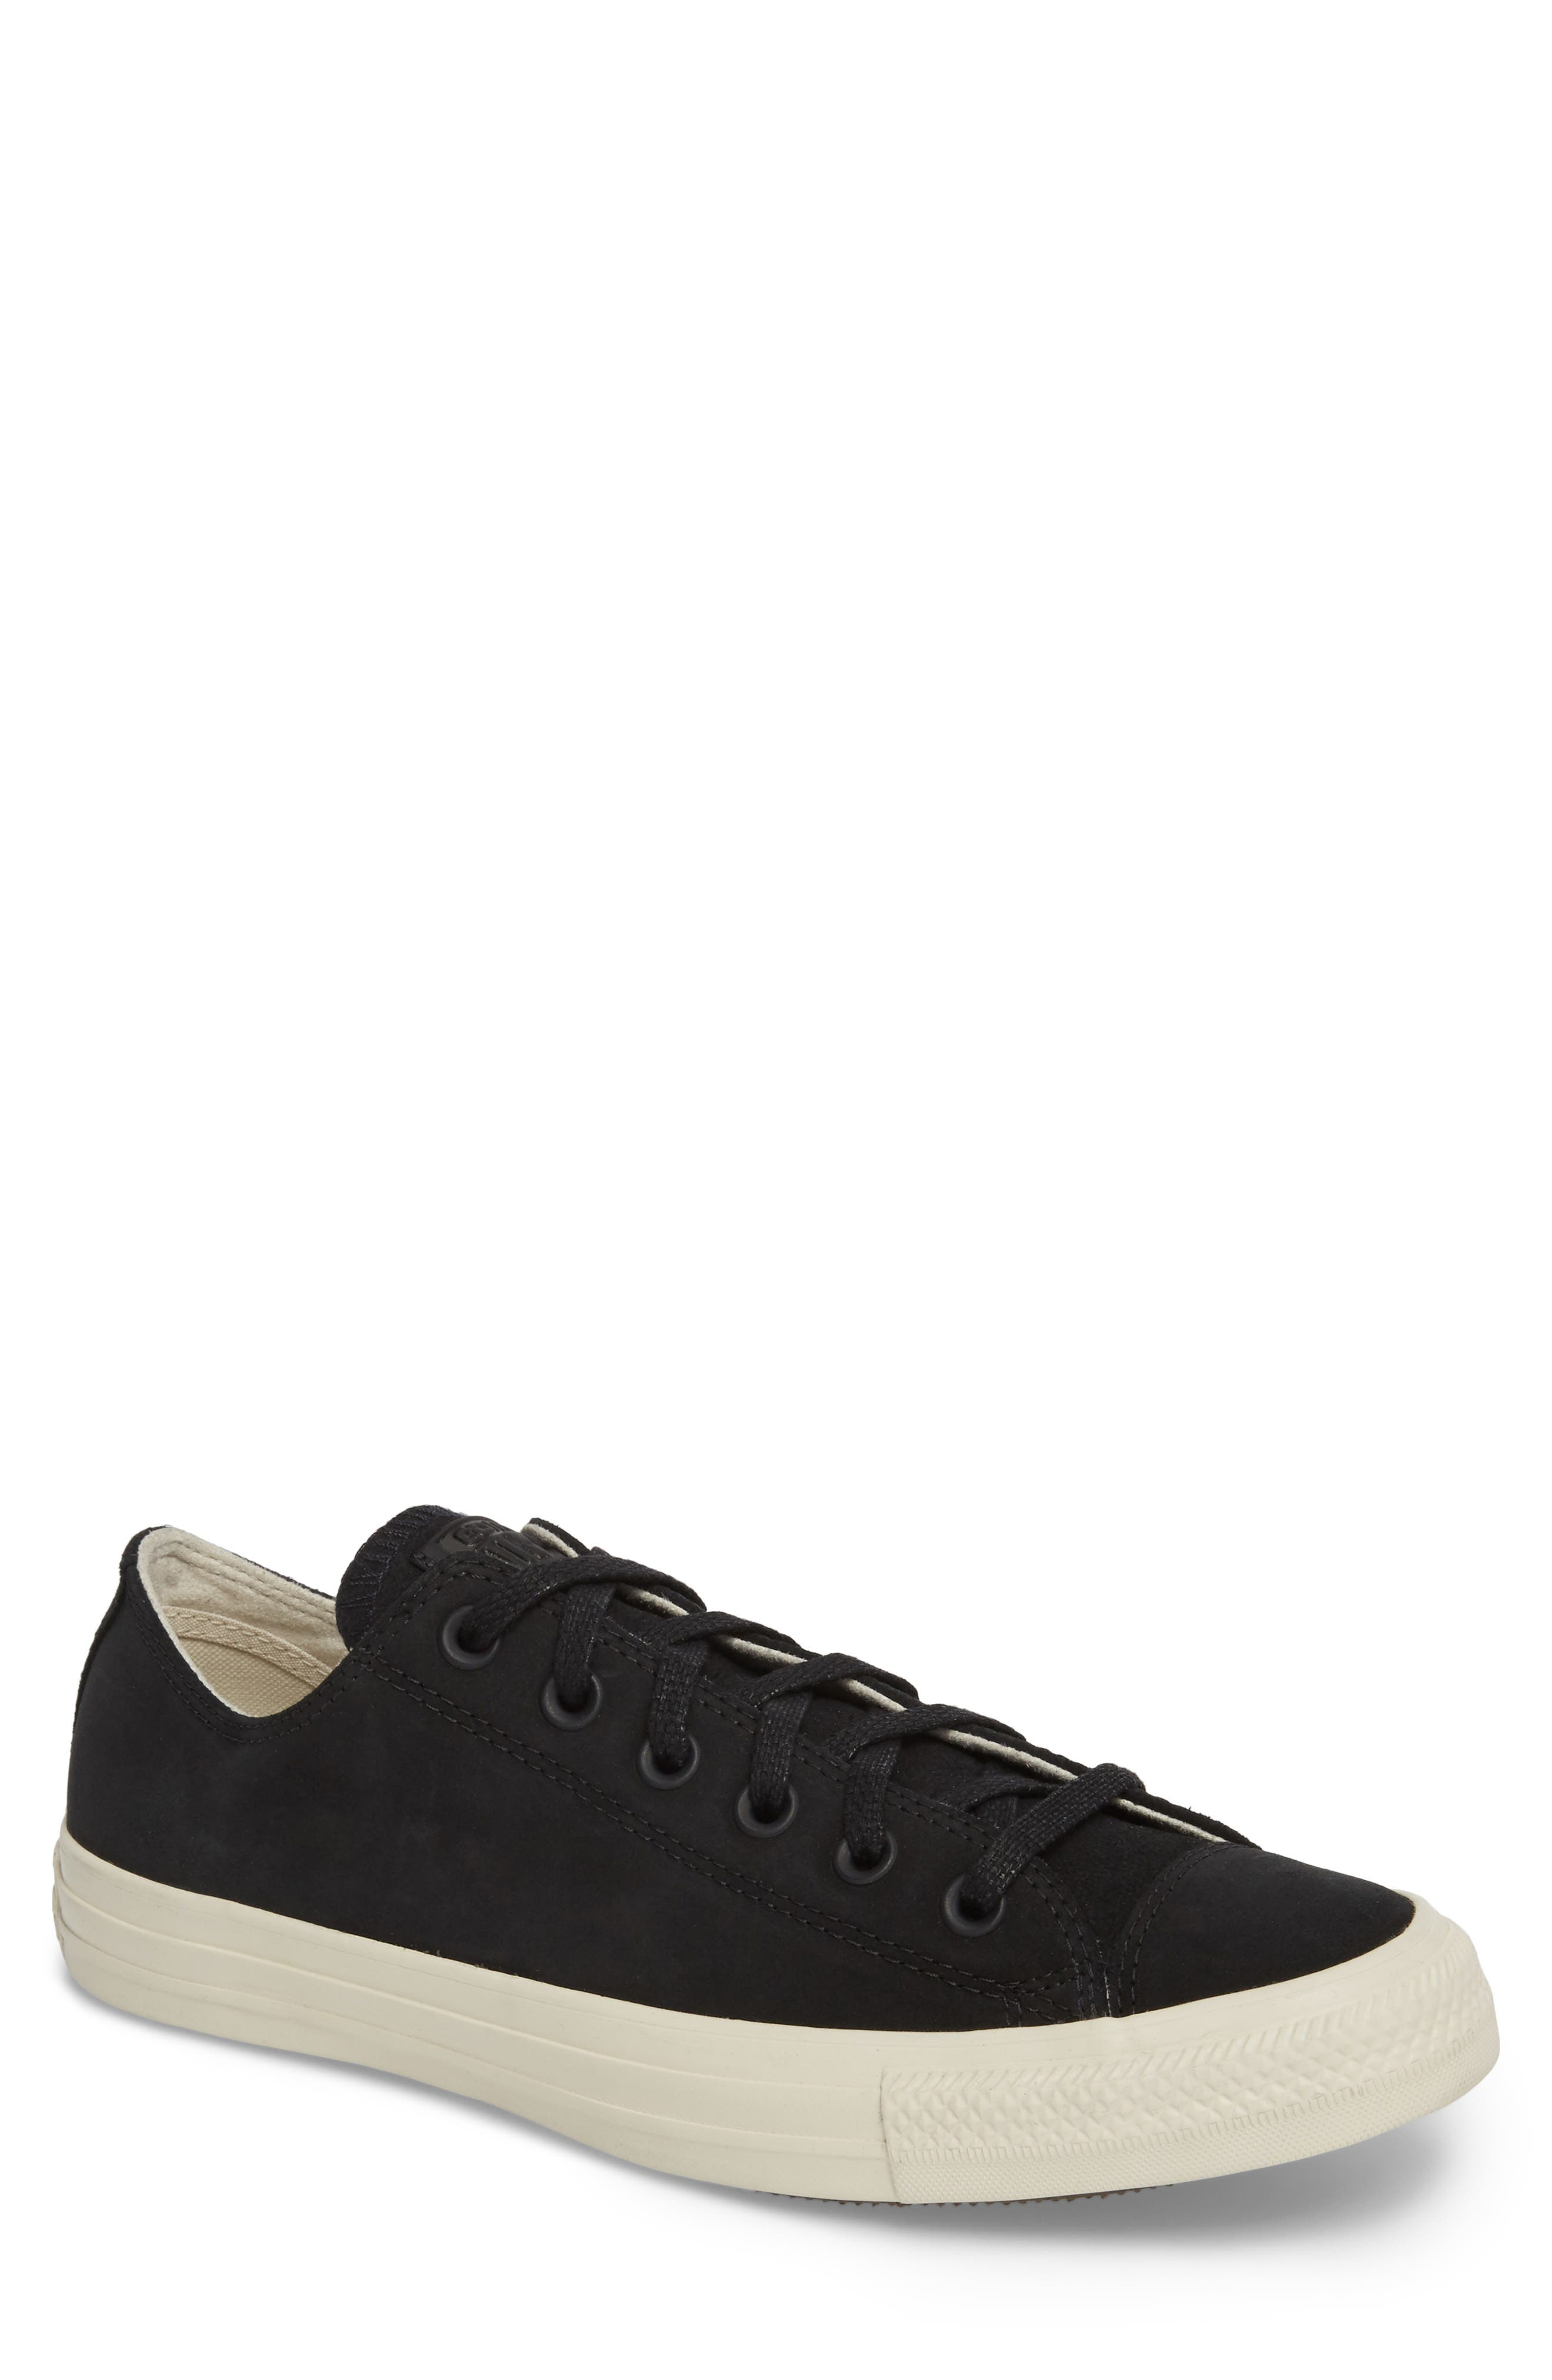 Chuck Taylor<sup>®</sup> All Star<sup>®</sup> Low Top Sneaker,                             Main thumbnail 1, color,                             Black Leather